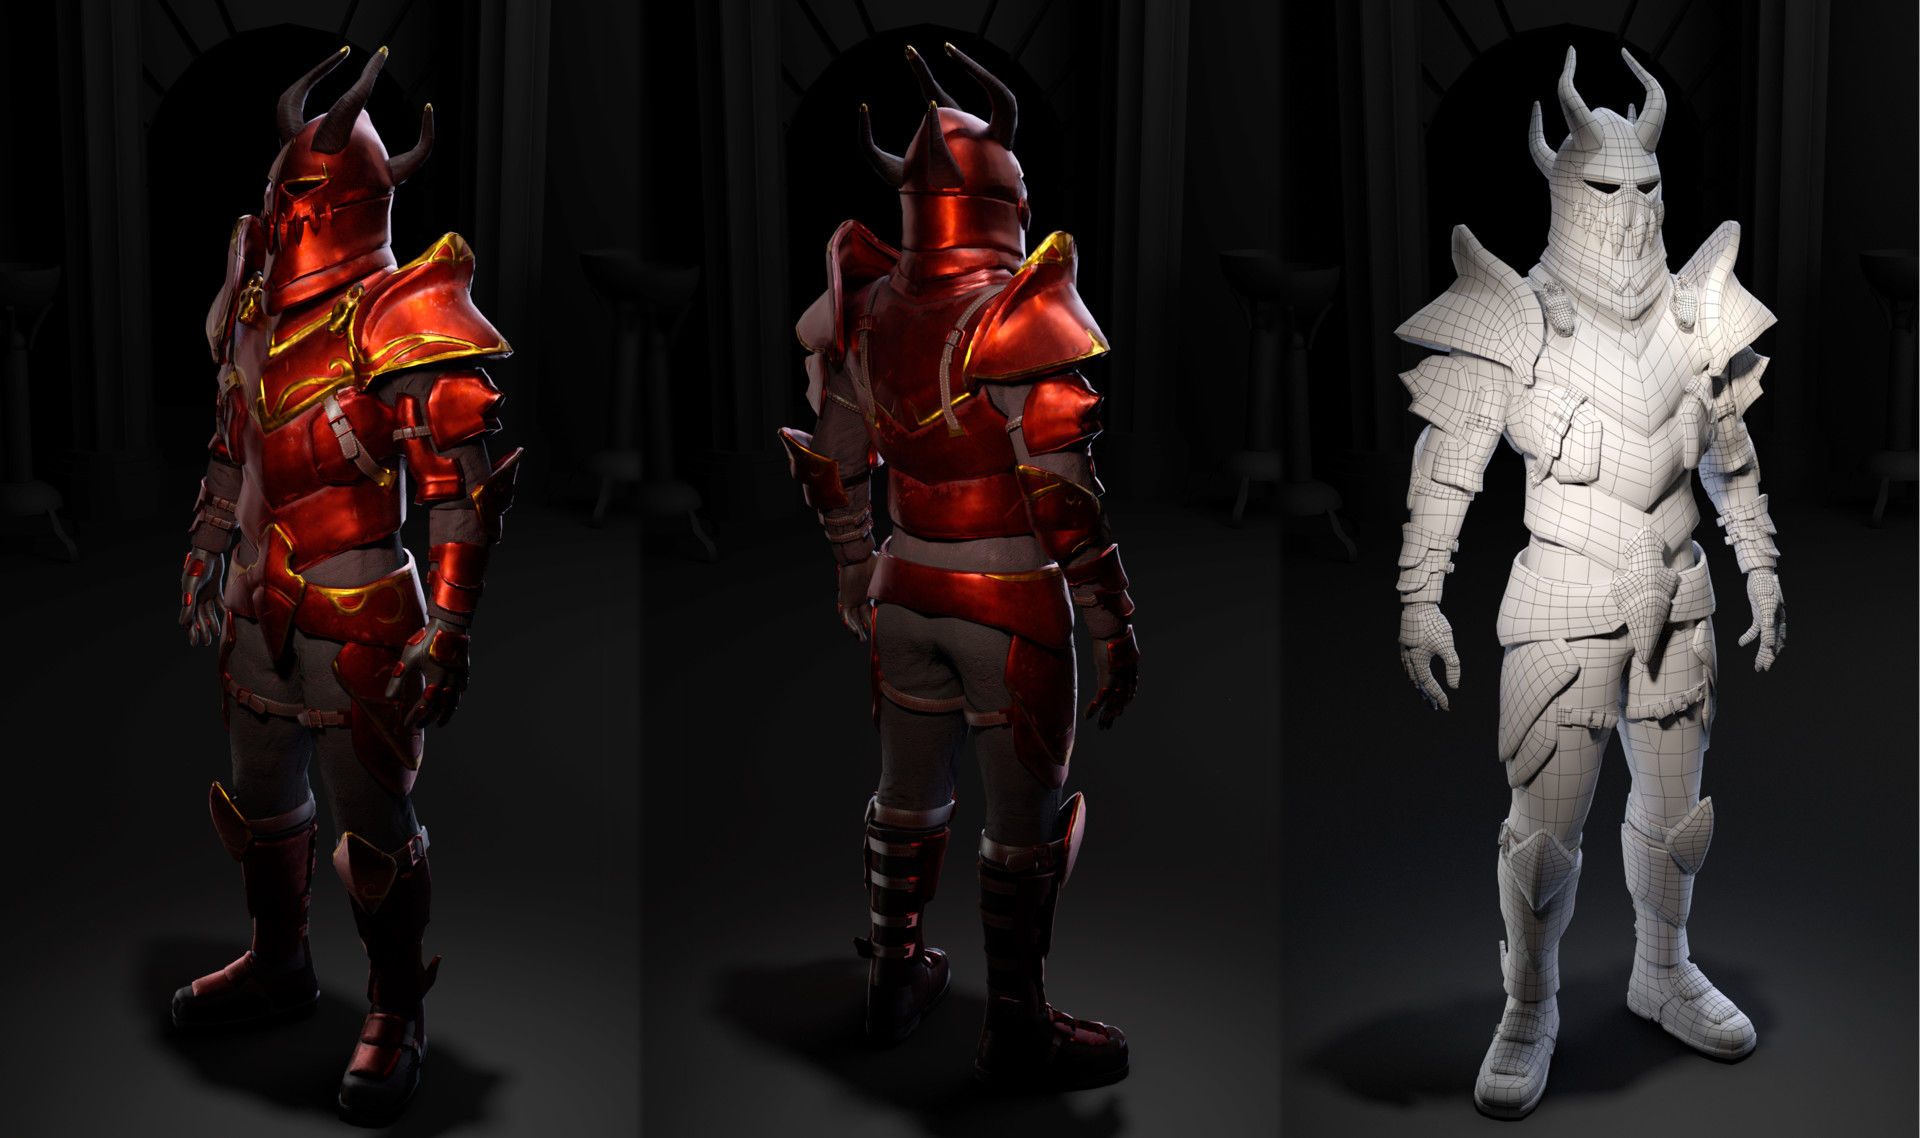 Martin Nagy Rs Dragon Armor G The breadth of the information is largely going to range from the classic period to. martin nagy rs dragon armor g